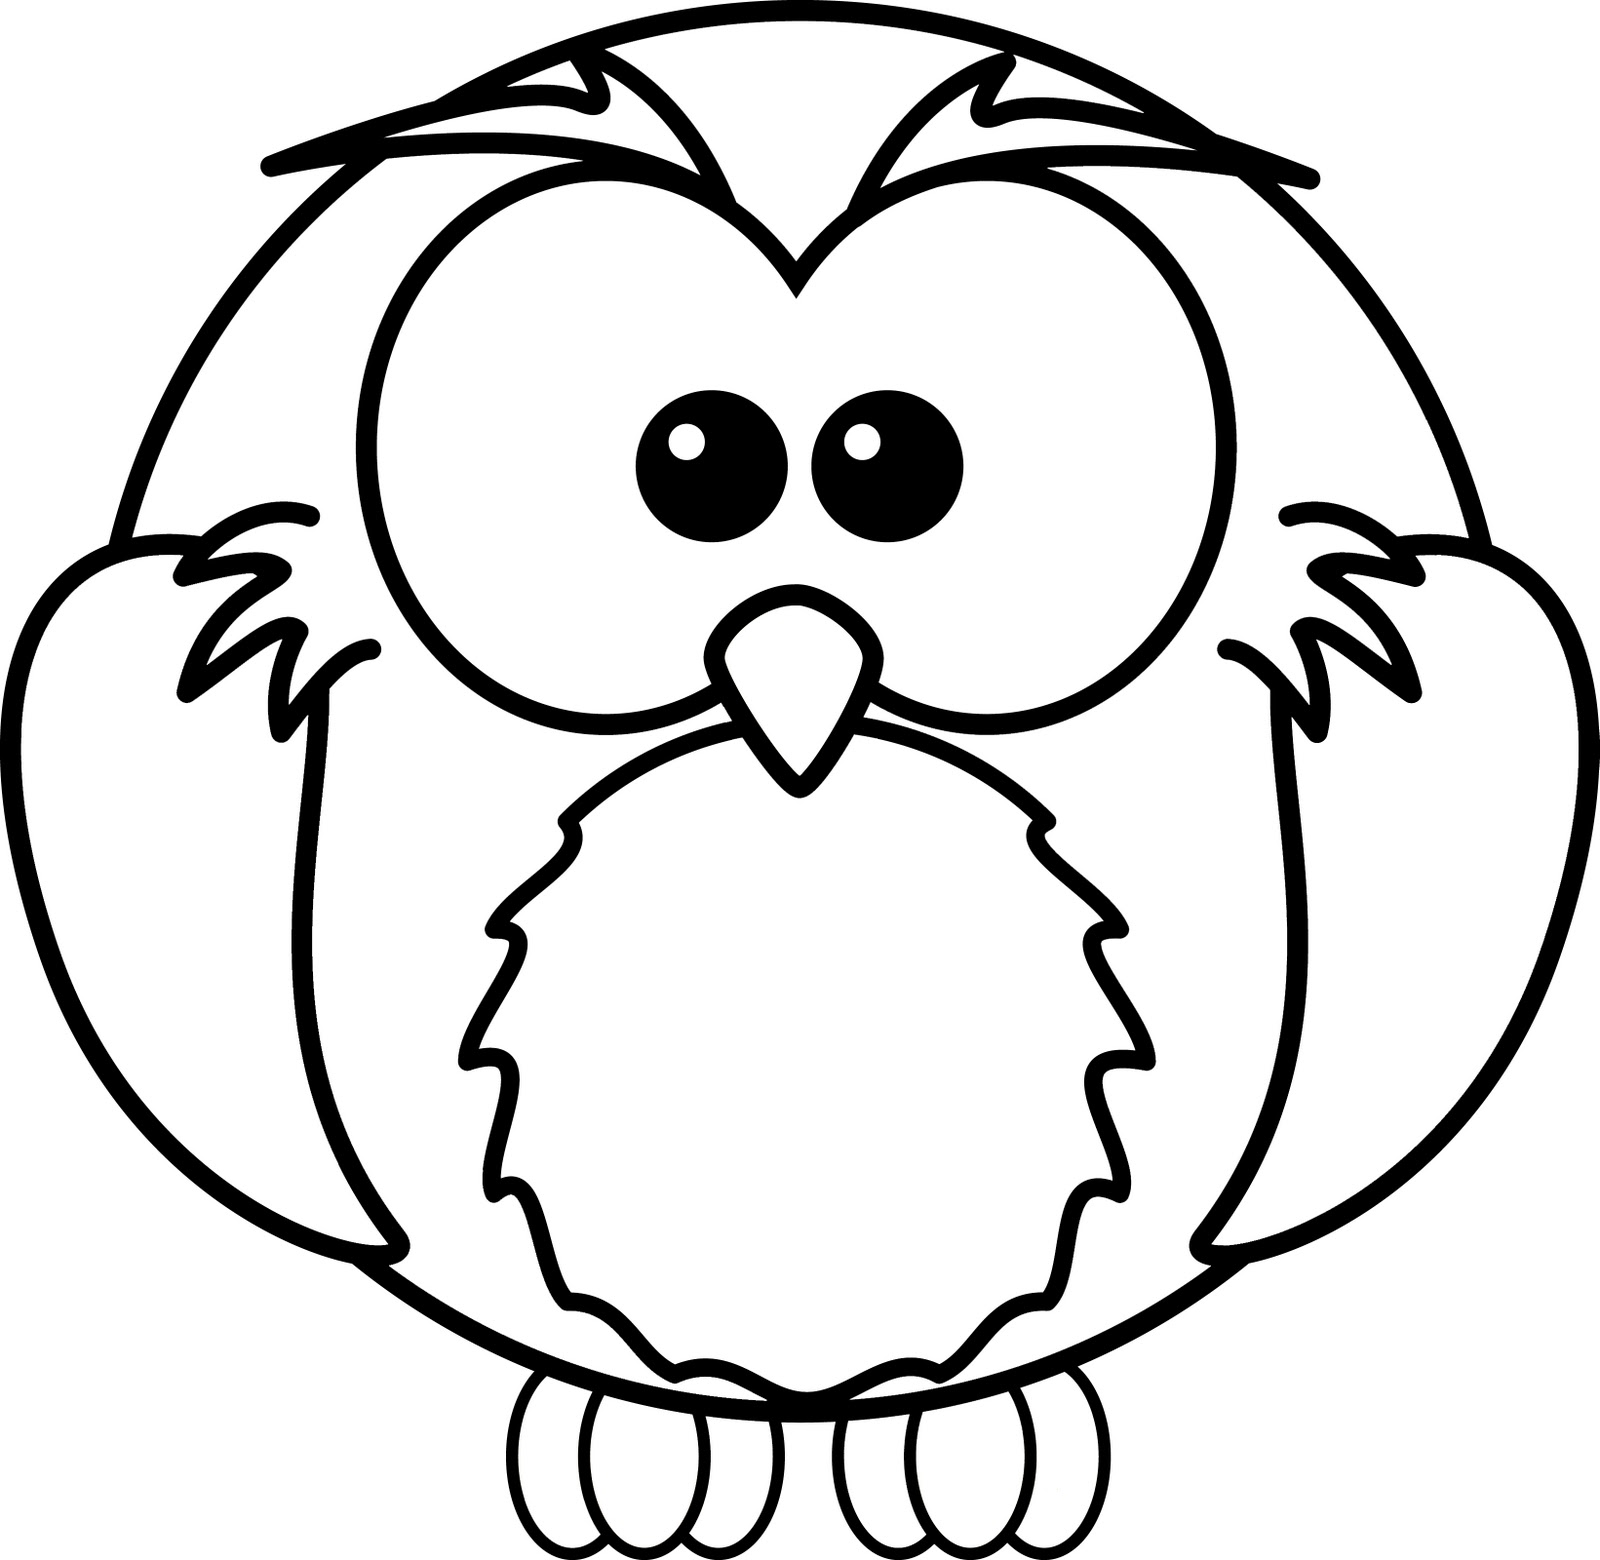 owl coloring pages free owl coloring pages owl pages coloring 1 1